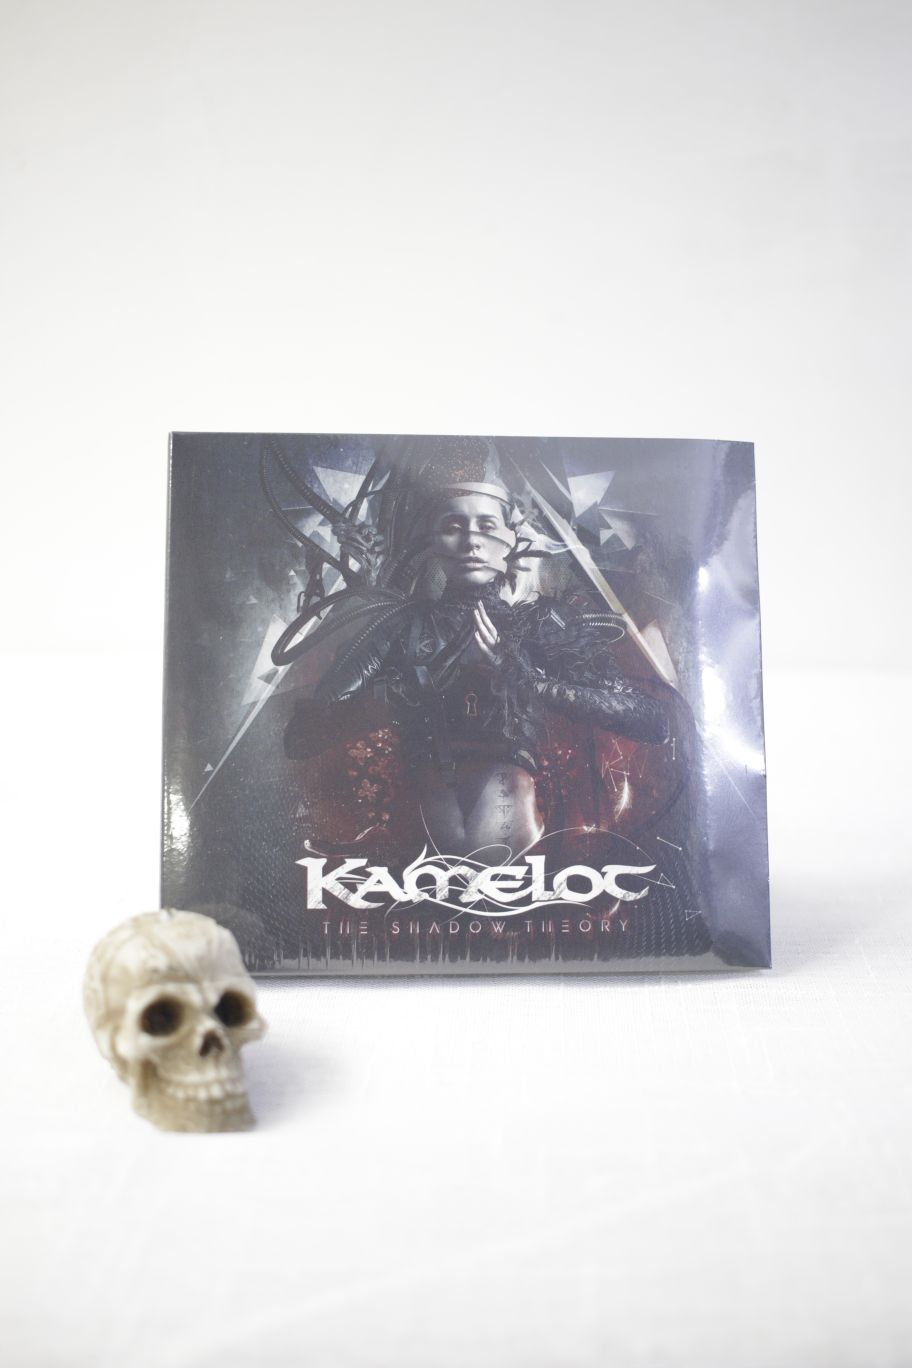 CD KAMELOT THE SHADOW THEORY BOOK